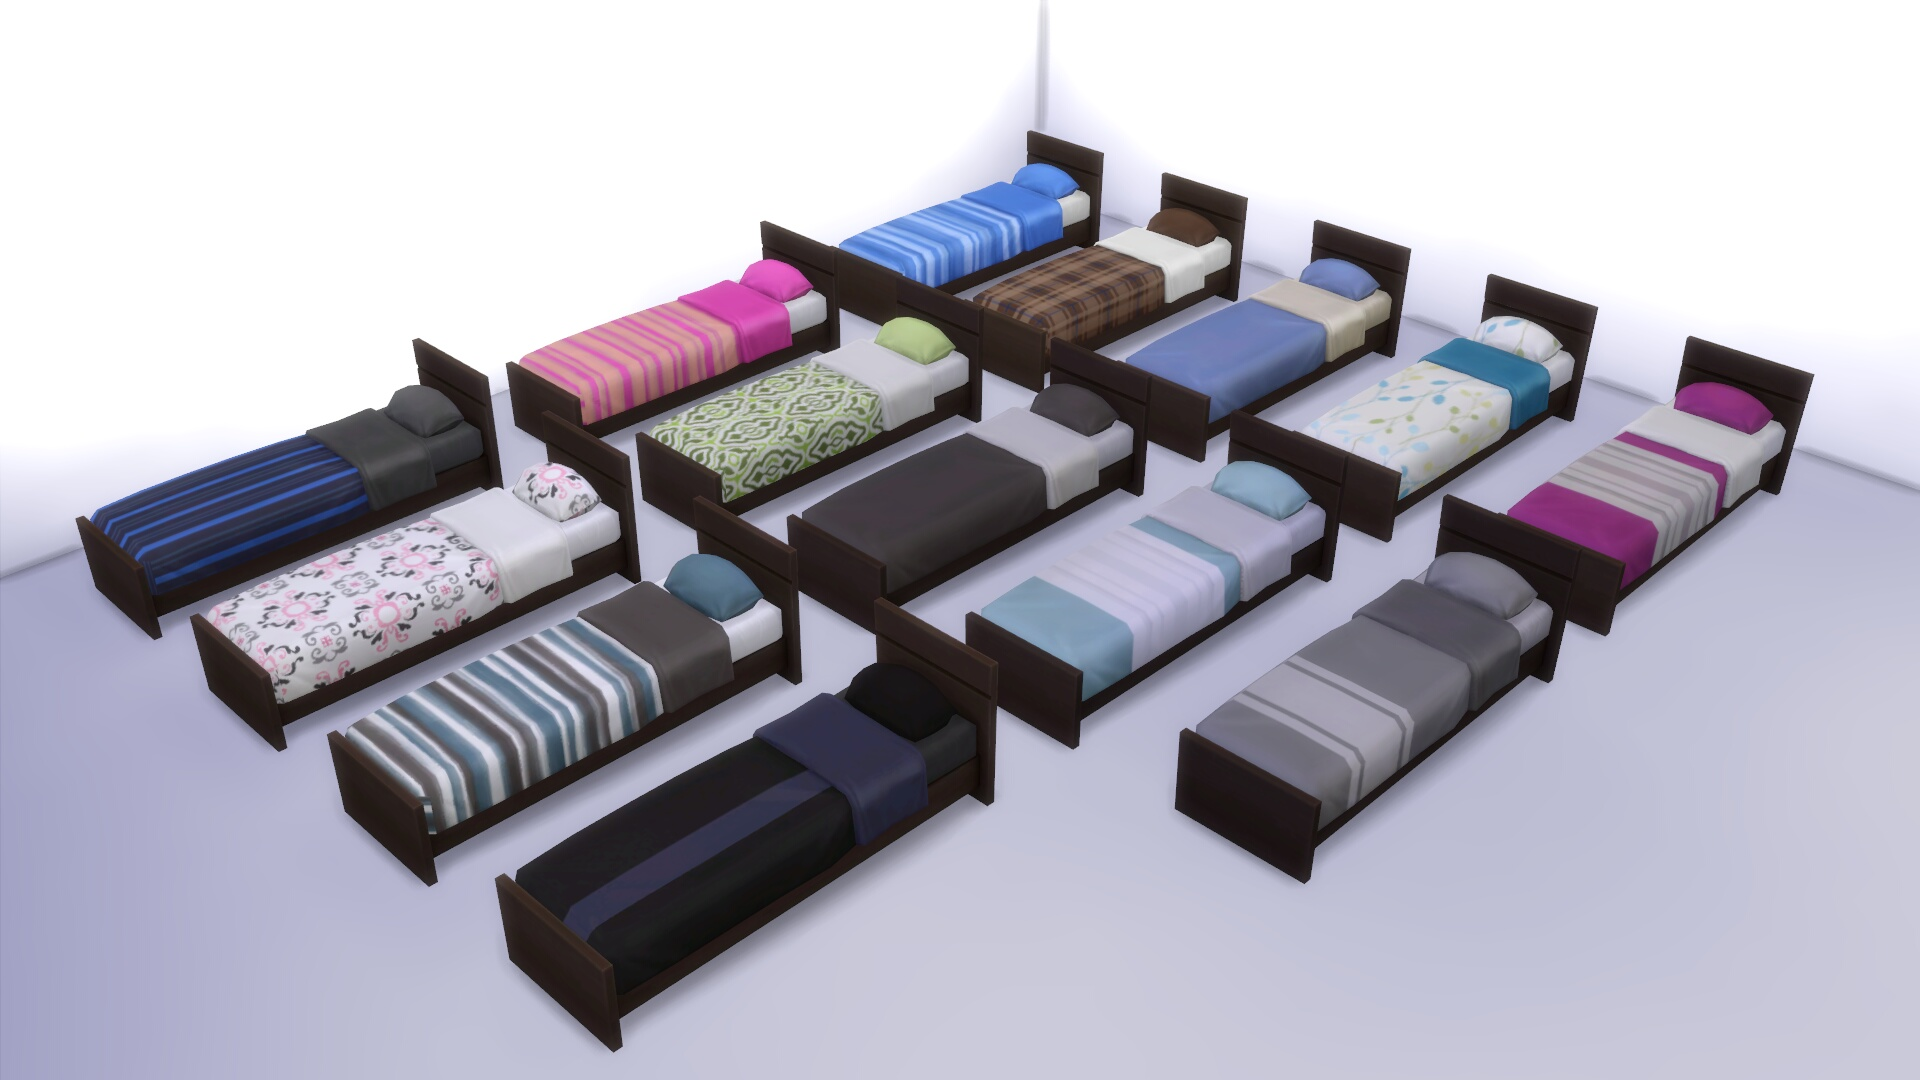 Mix and Match Bedroom Furniture by Wee Albet